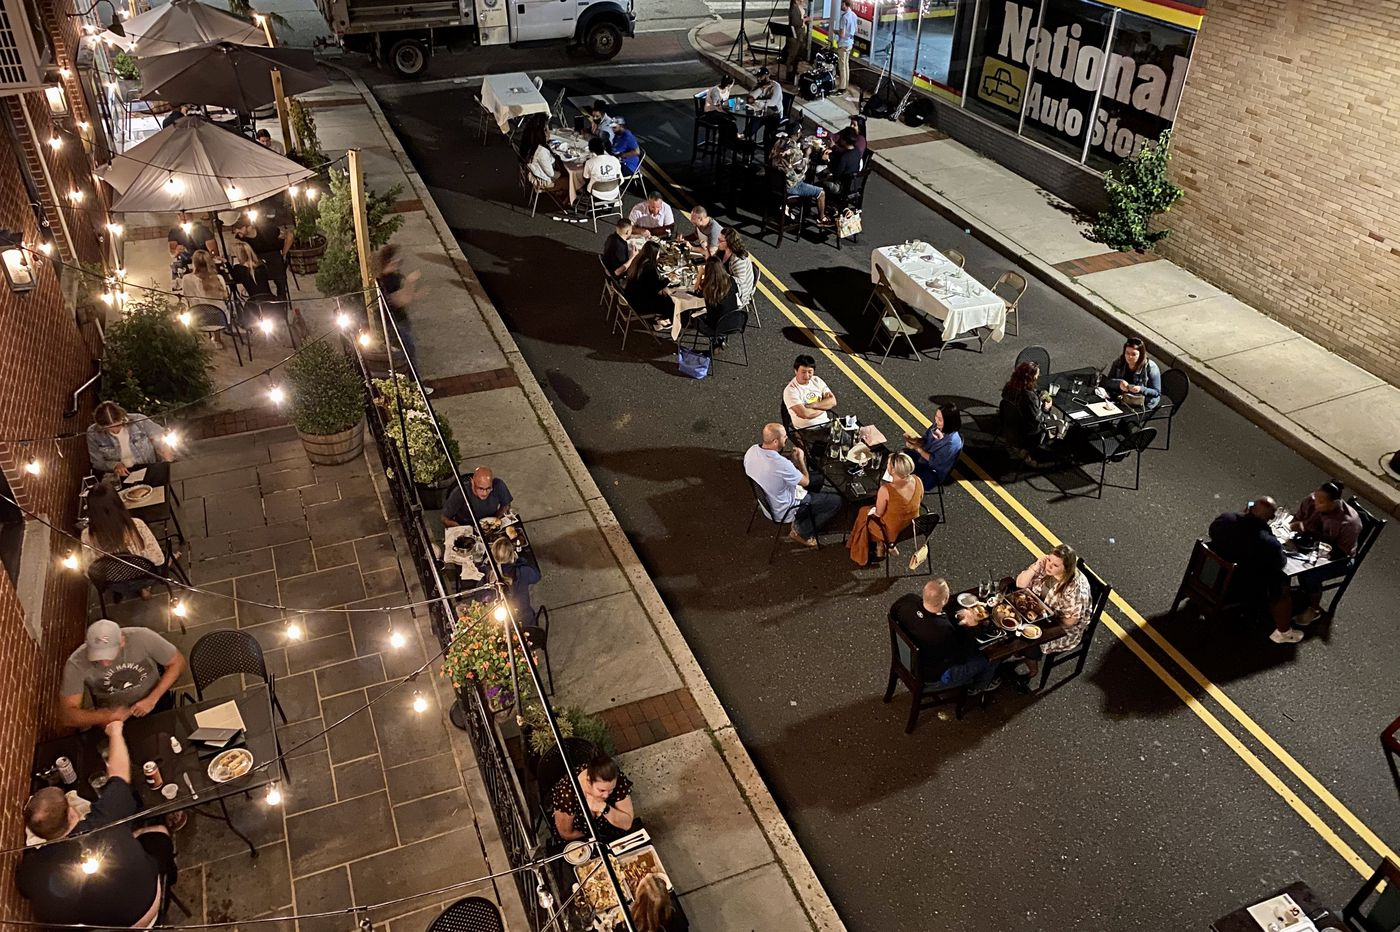 Last call for Pennsylvania bars and restaurants will be at 11 p.m., effective Monday